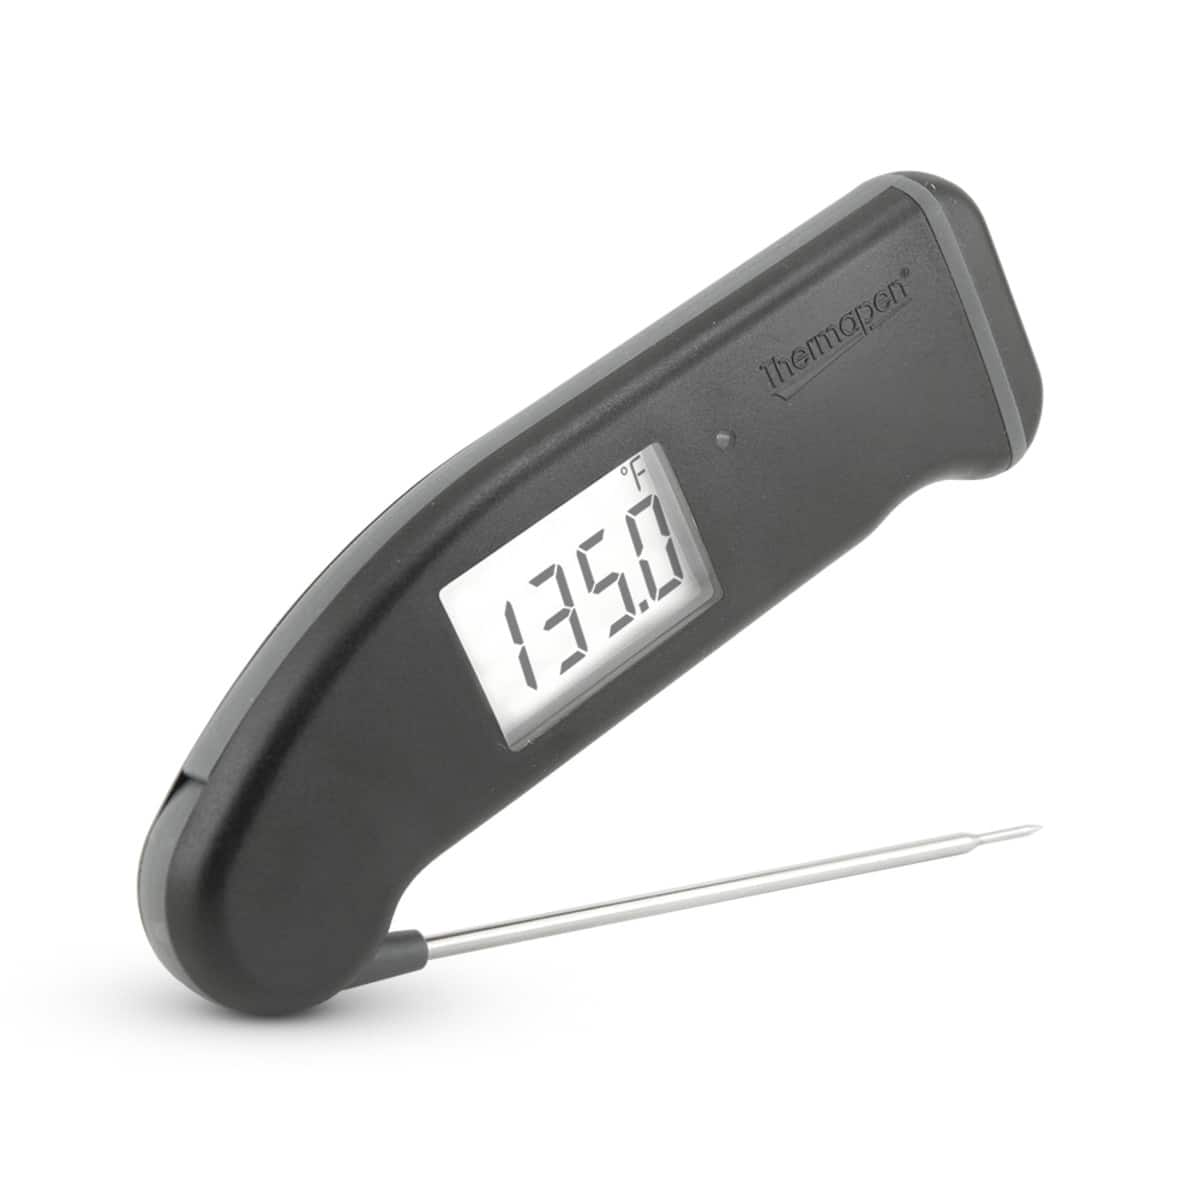 ThermoWorks Thermapen Mk4 sale - $79.20 + $4 S&H (or less)